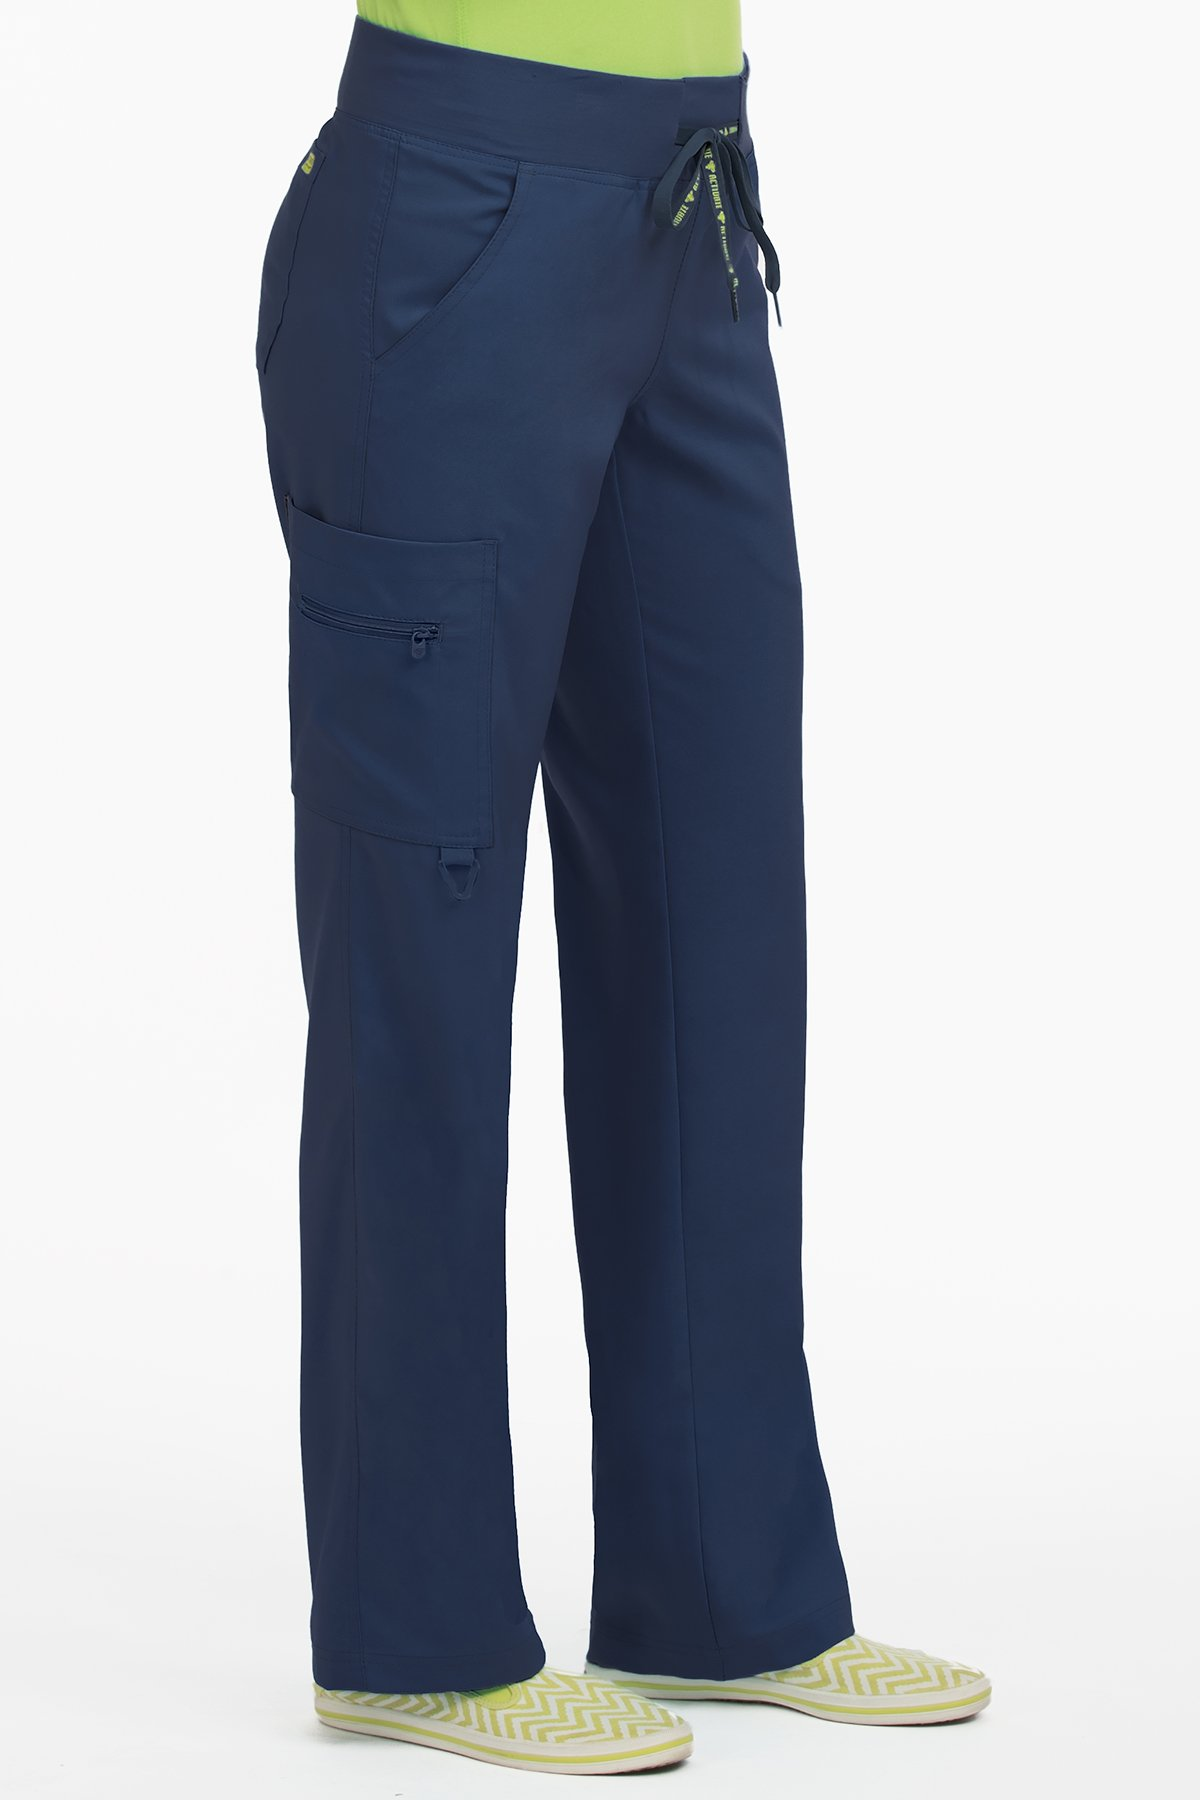 7f6010fa011 Galleon - Med Couture Scrub Pants Women, Yoga Cargo Pocket Scrub Pant,  Small, Navy